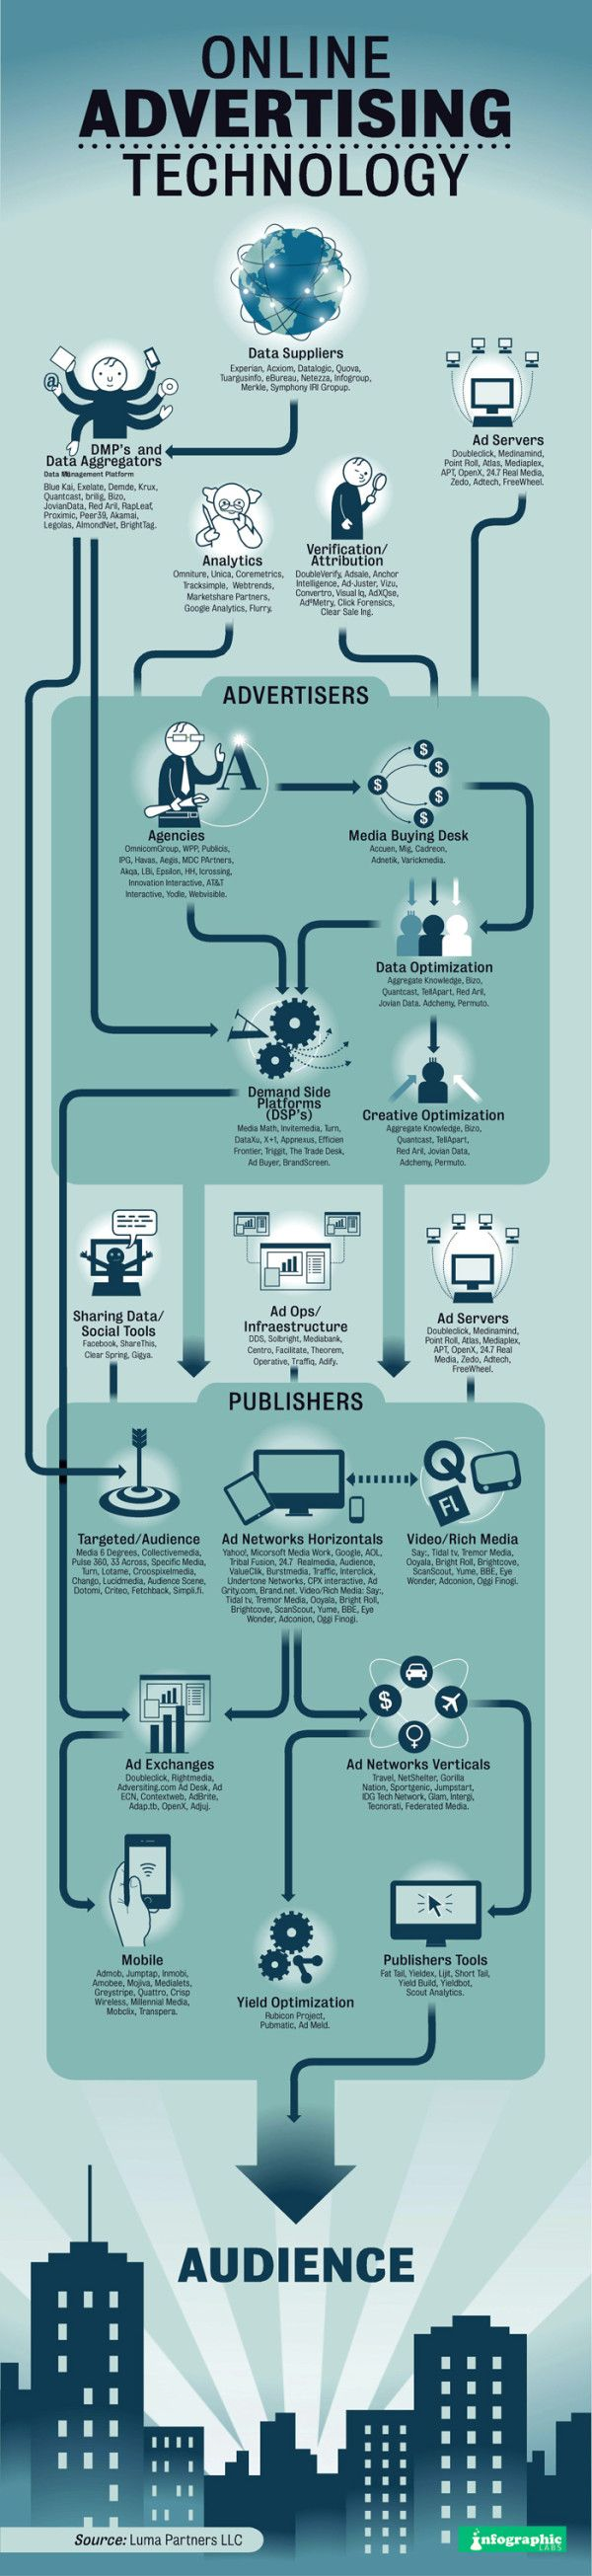 29 best Infographics images on Pinterest | Info graphics, Chart ...